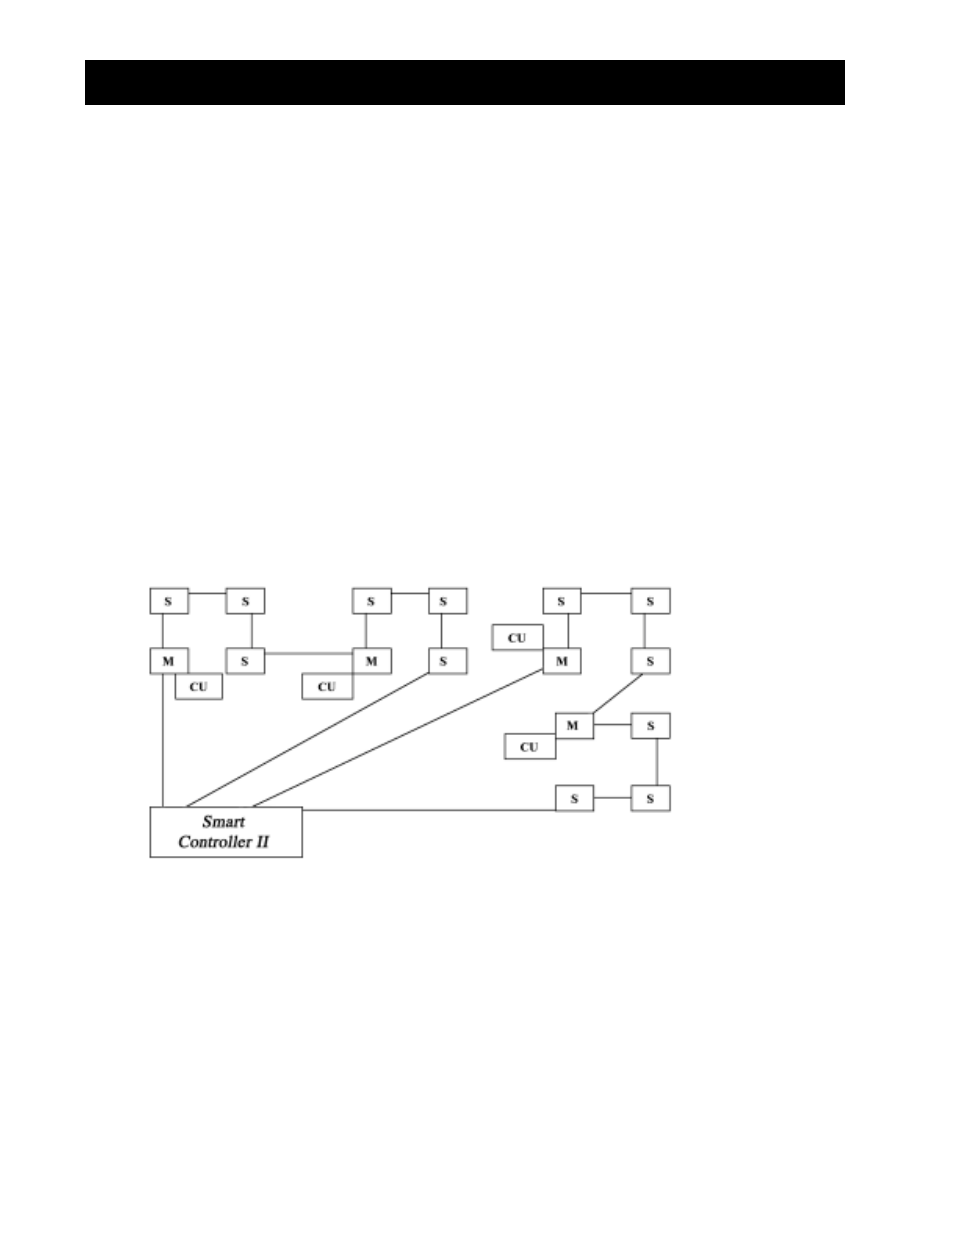 Power supply | Heatcraft Refrigeration Products BEACON II SMART CONTROLLER  H-IM-80C User Manual | Page 6 / 24